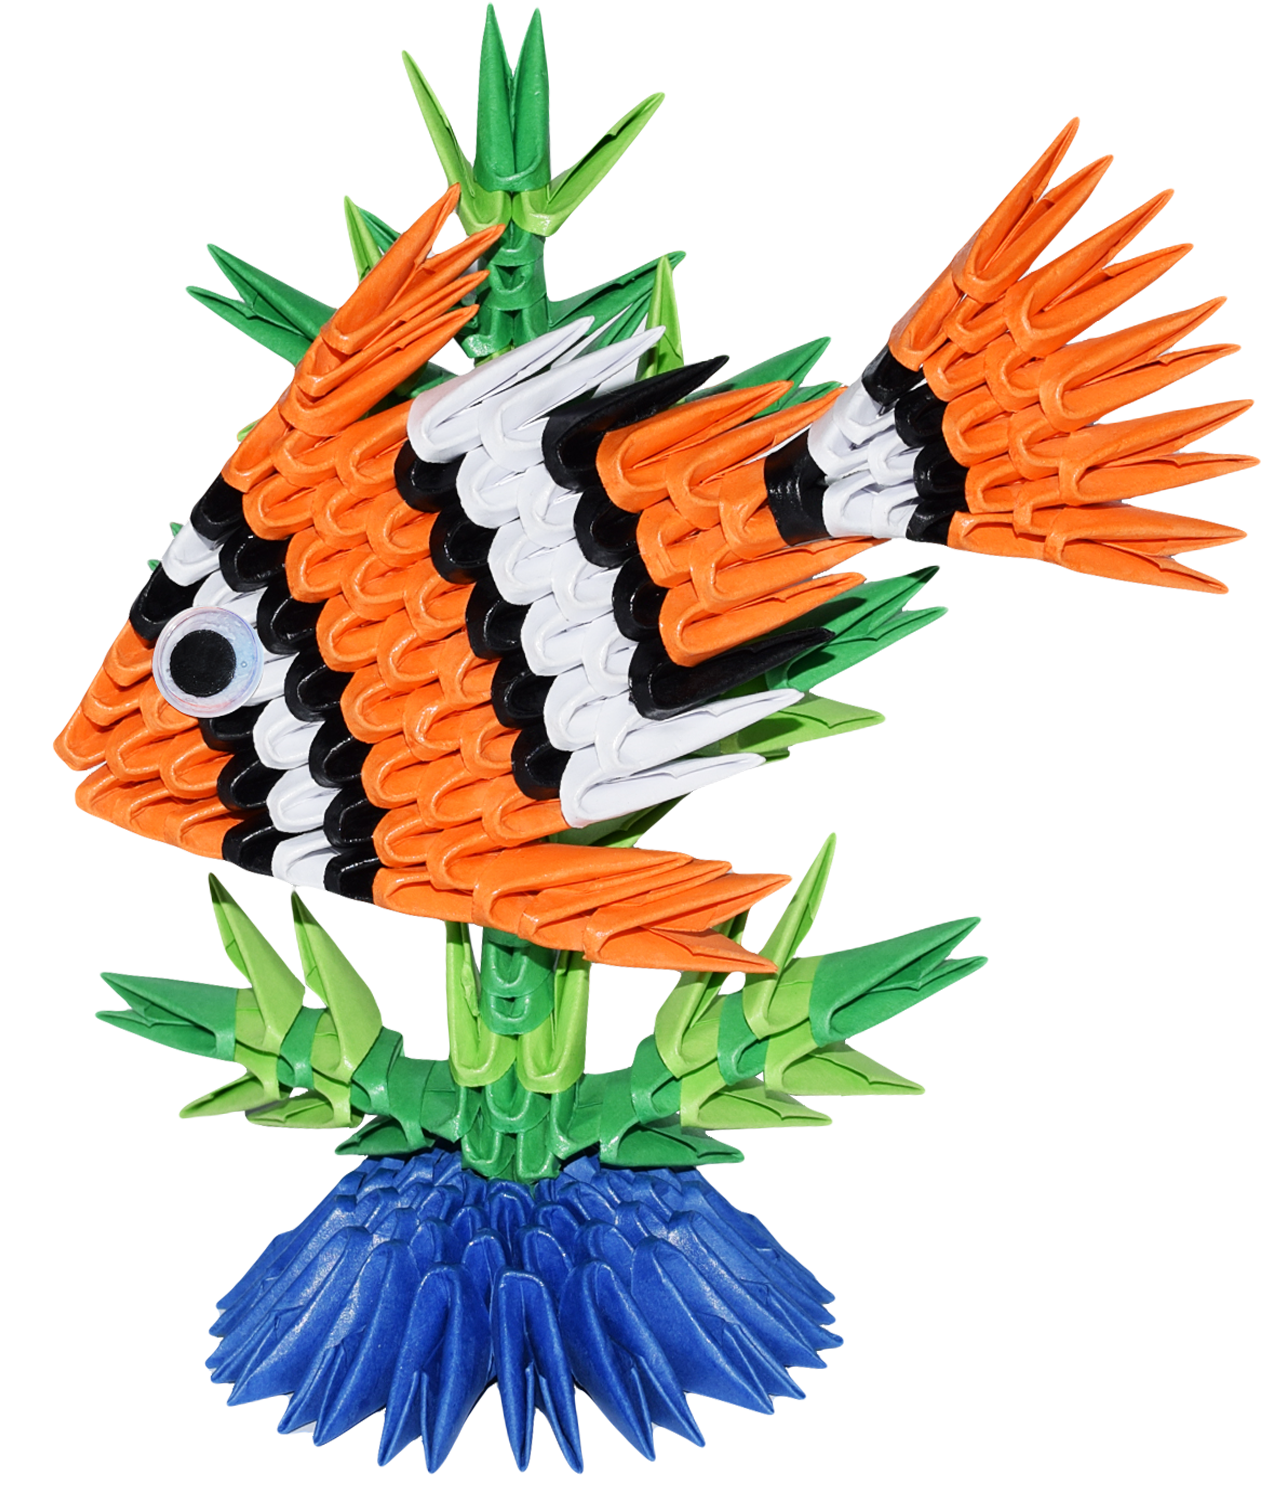 Kit Pesce Tropicale Kit Tropical Fish Ying 3d Origami